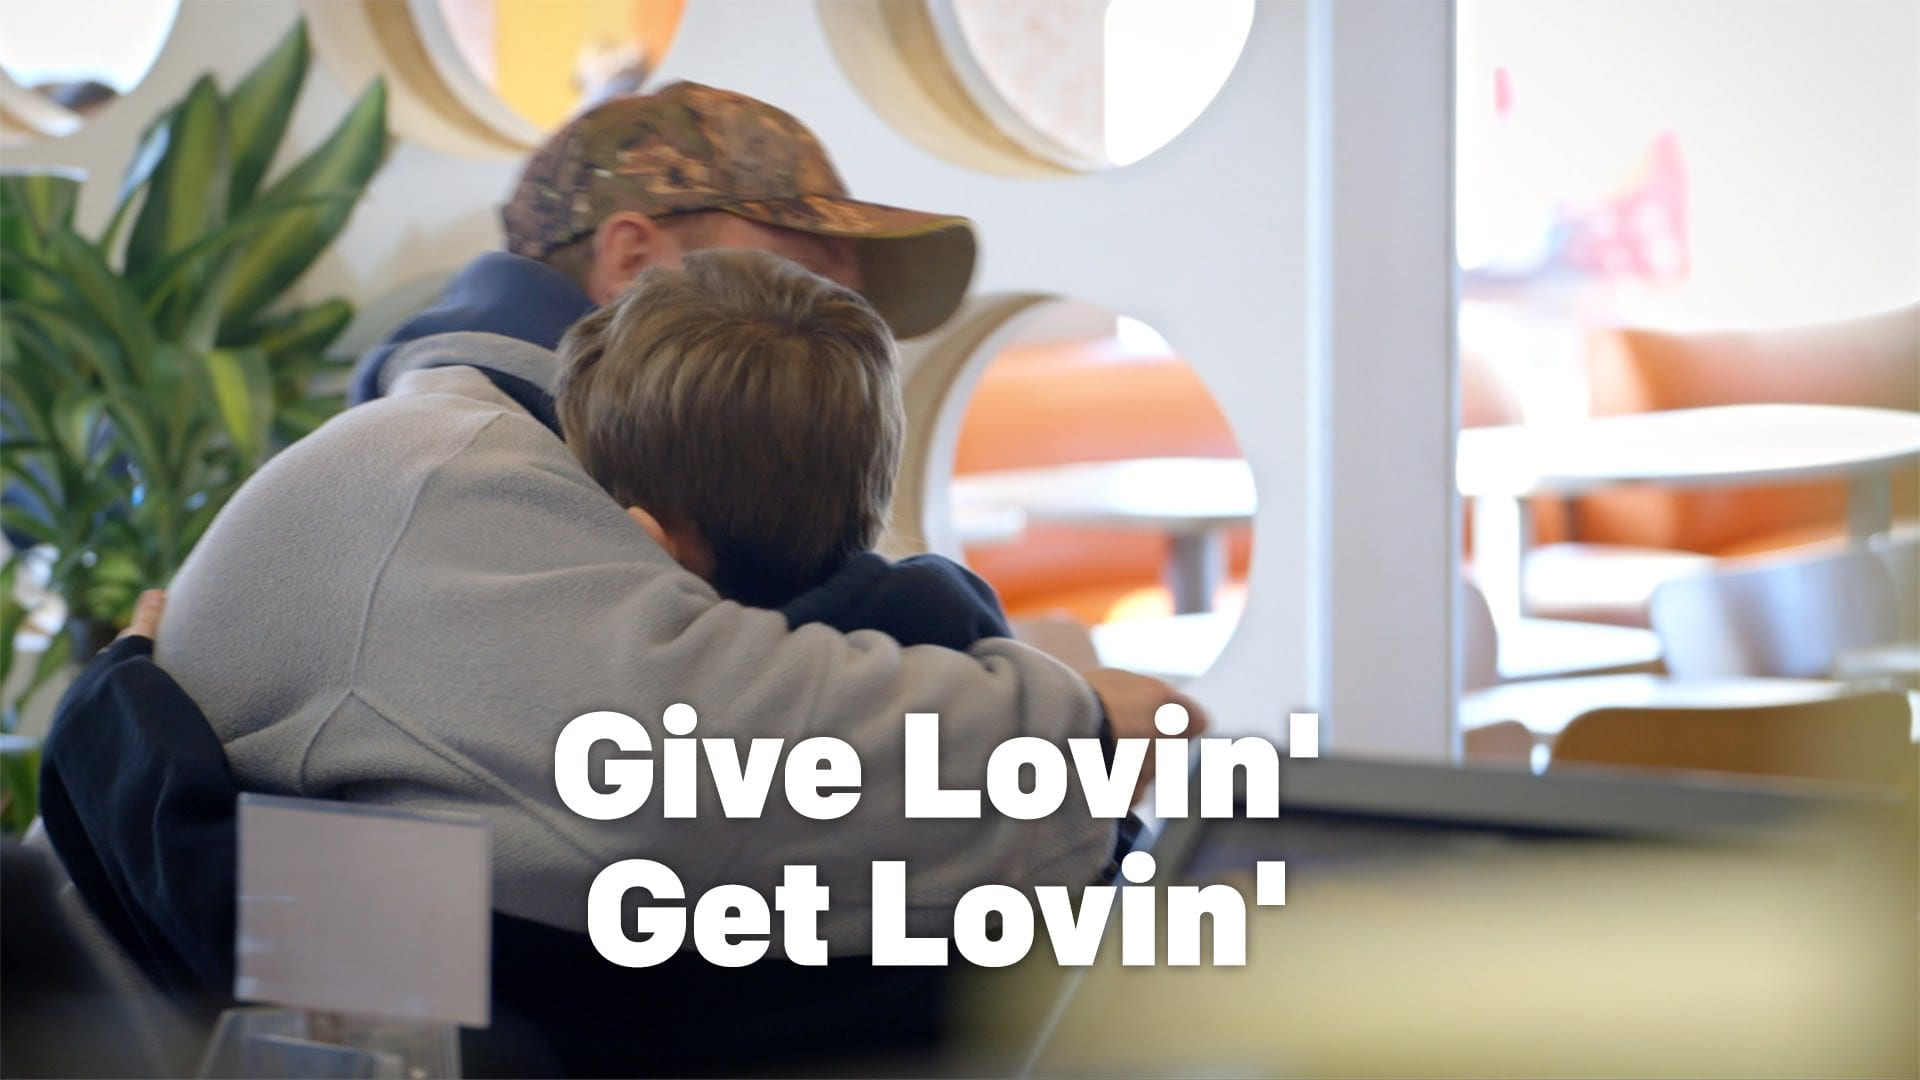 McDonald's: Pay With Lovin'